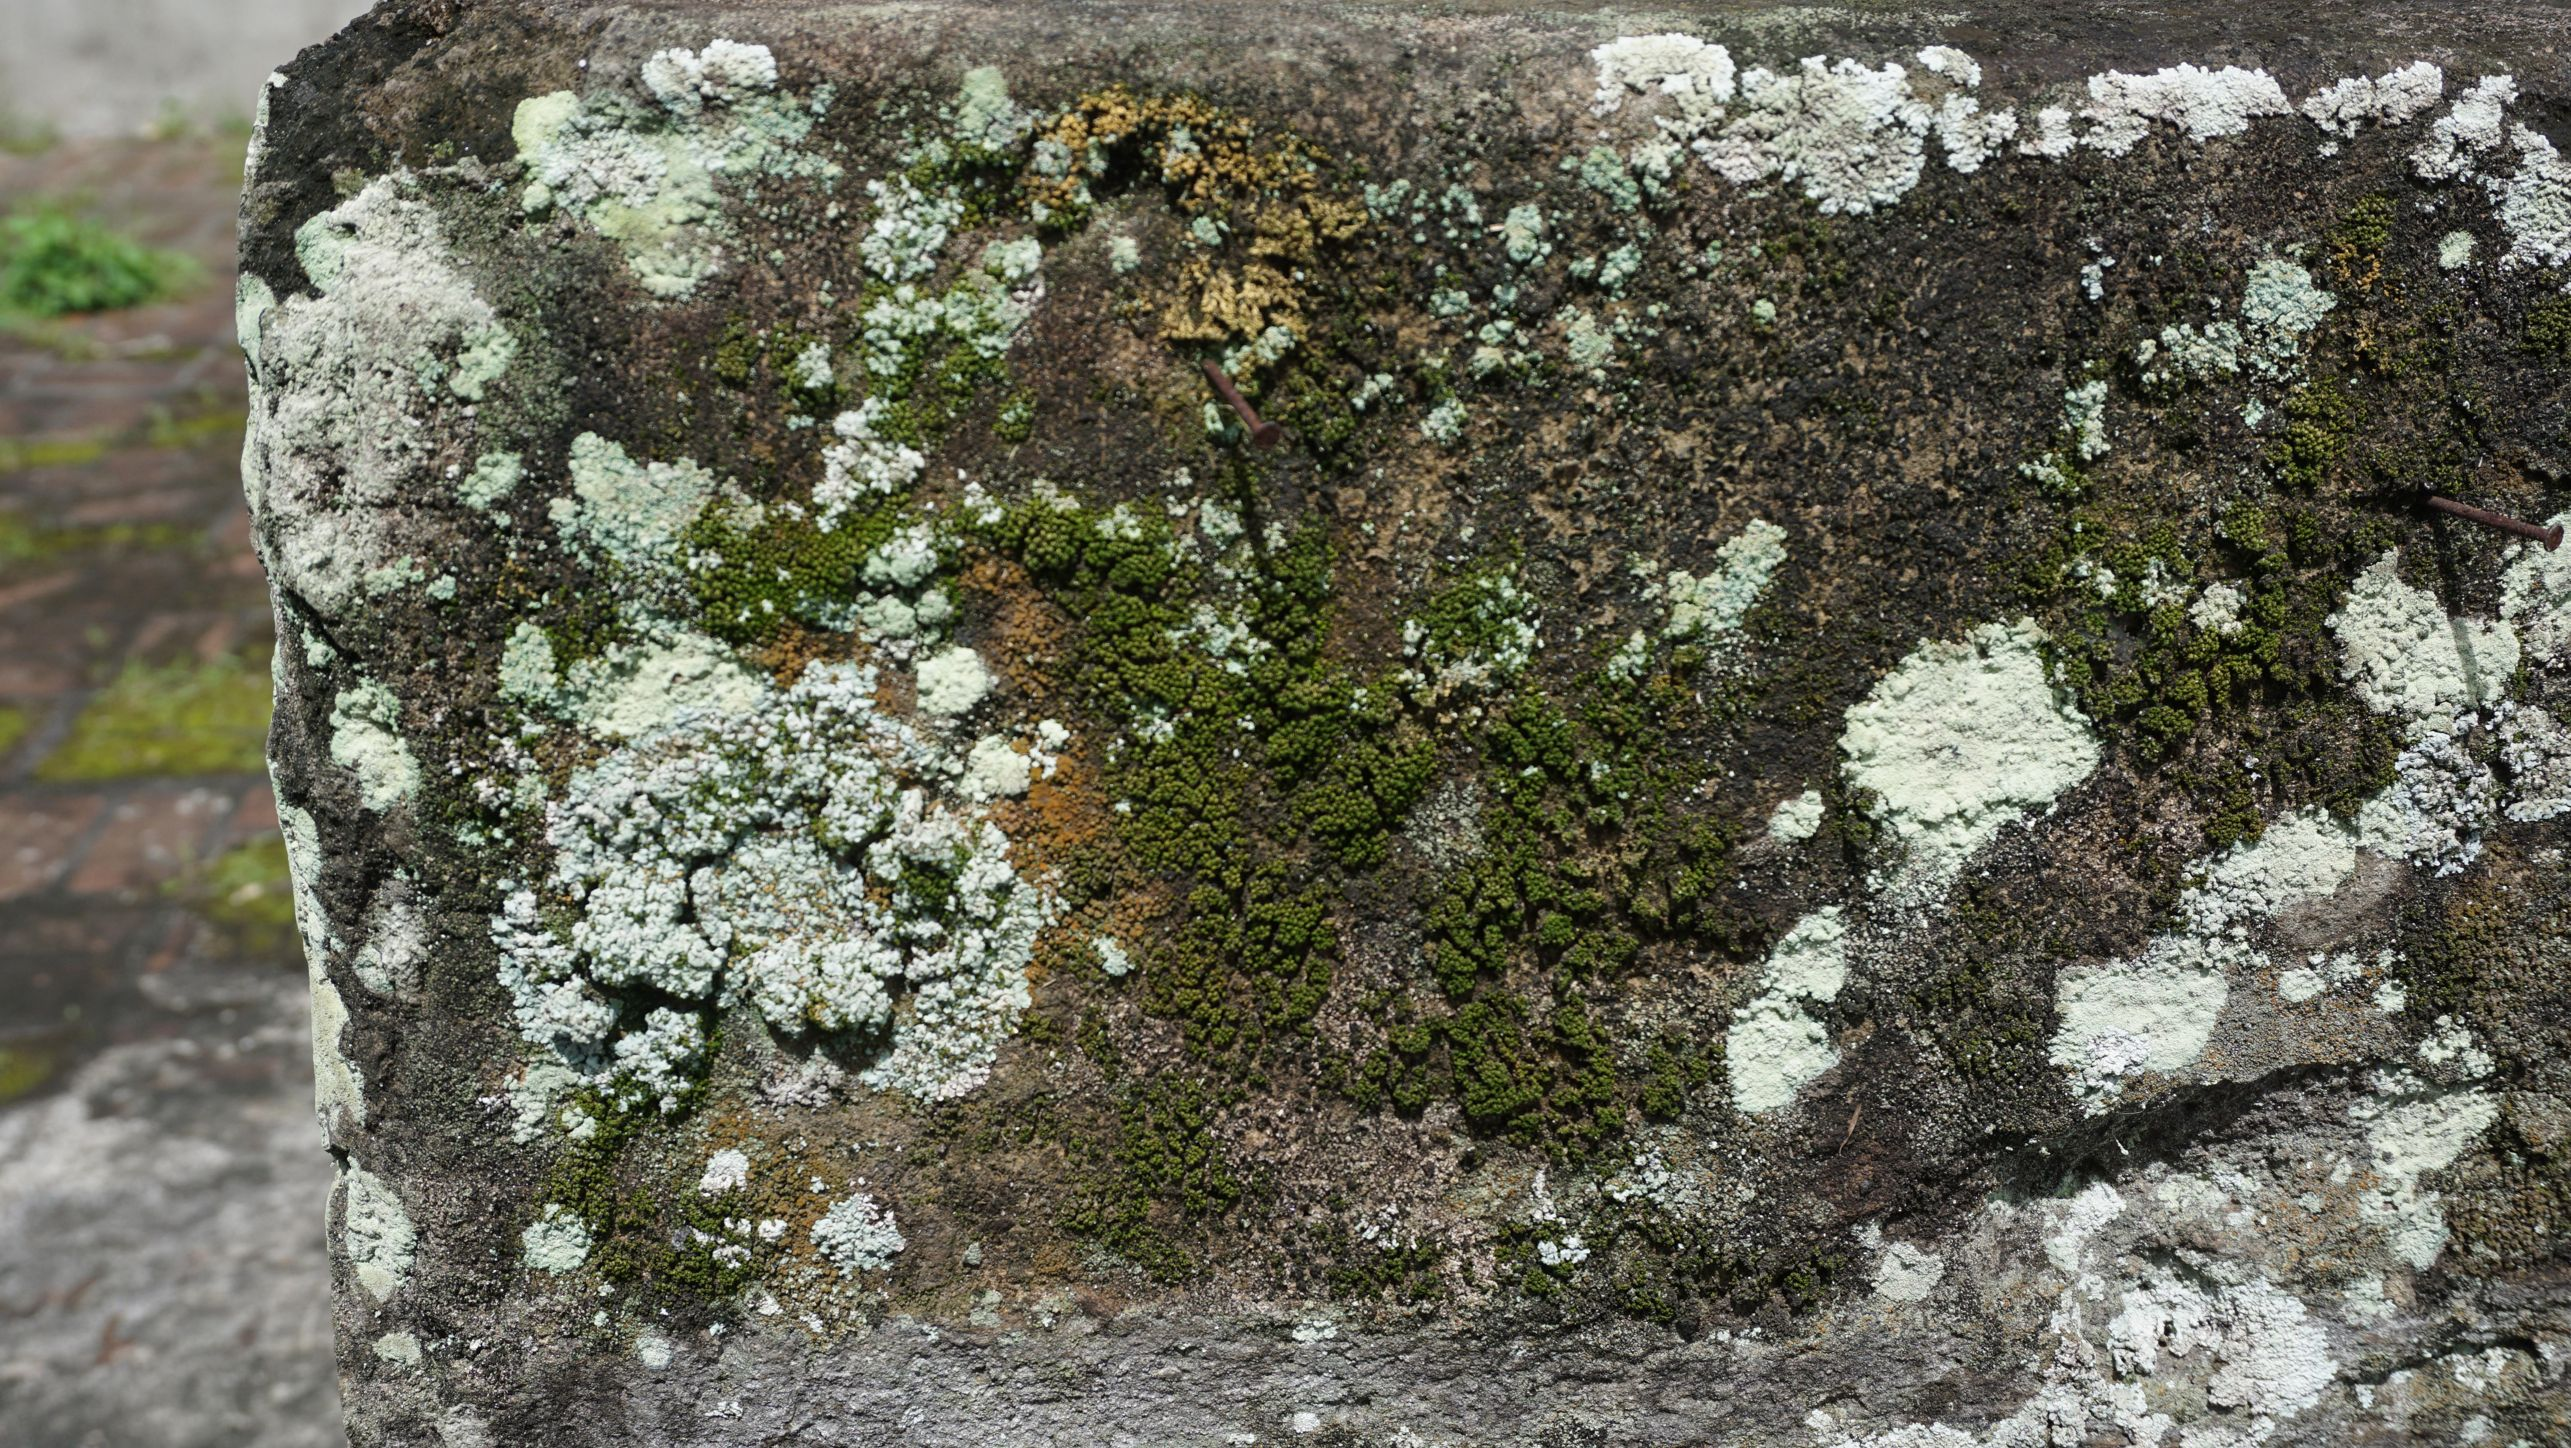 Mosses and lichens infested stone structure: before conservation. Image courtesy of Saiful Bakhri.